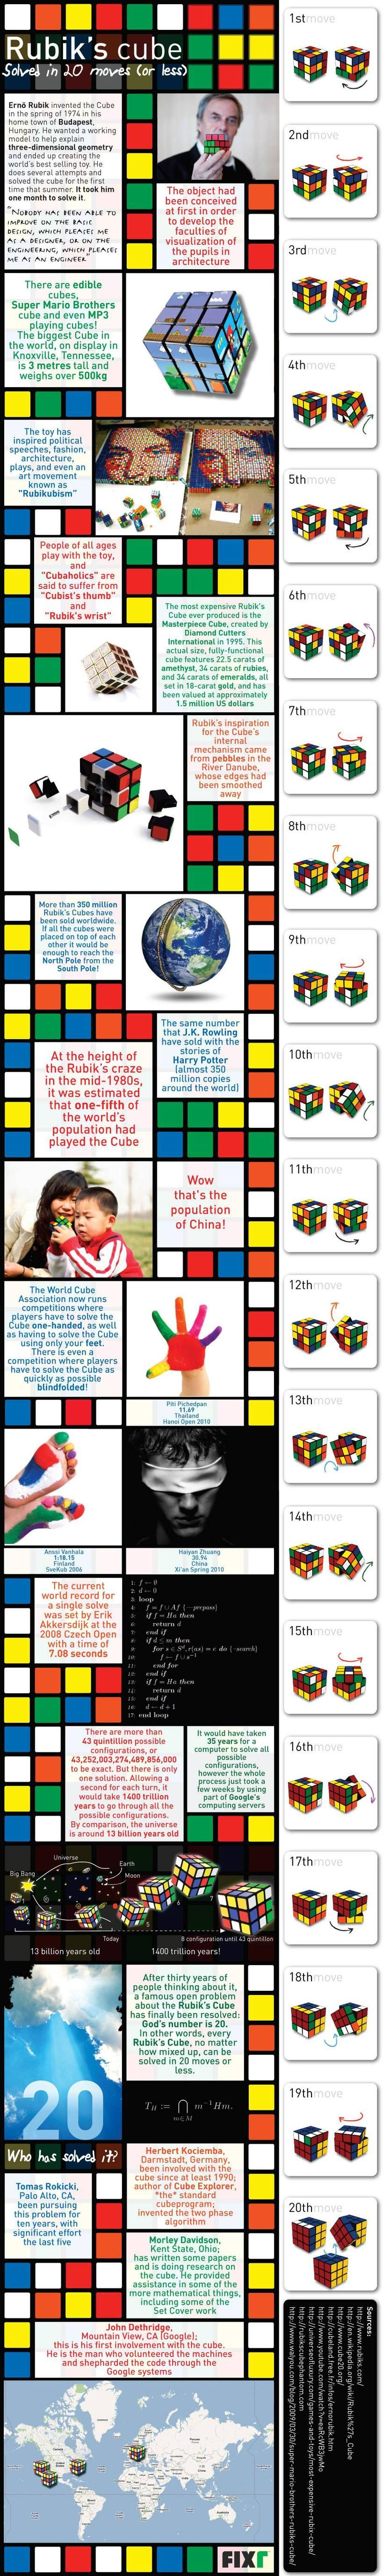 Rubik's cube solved in 20 moves (or less) Rubik's cube